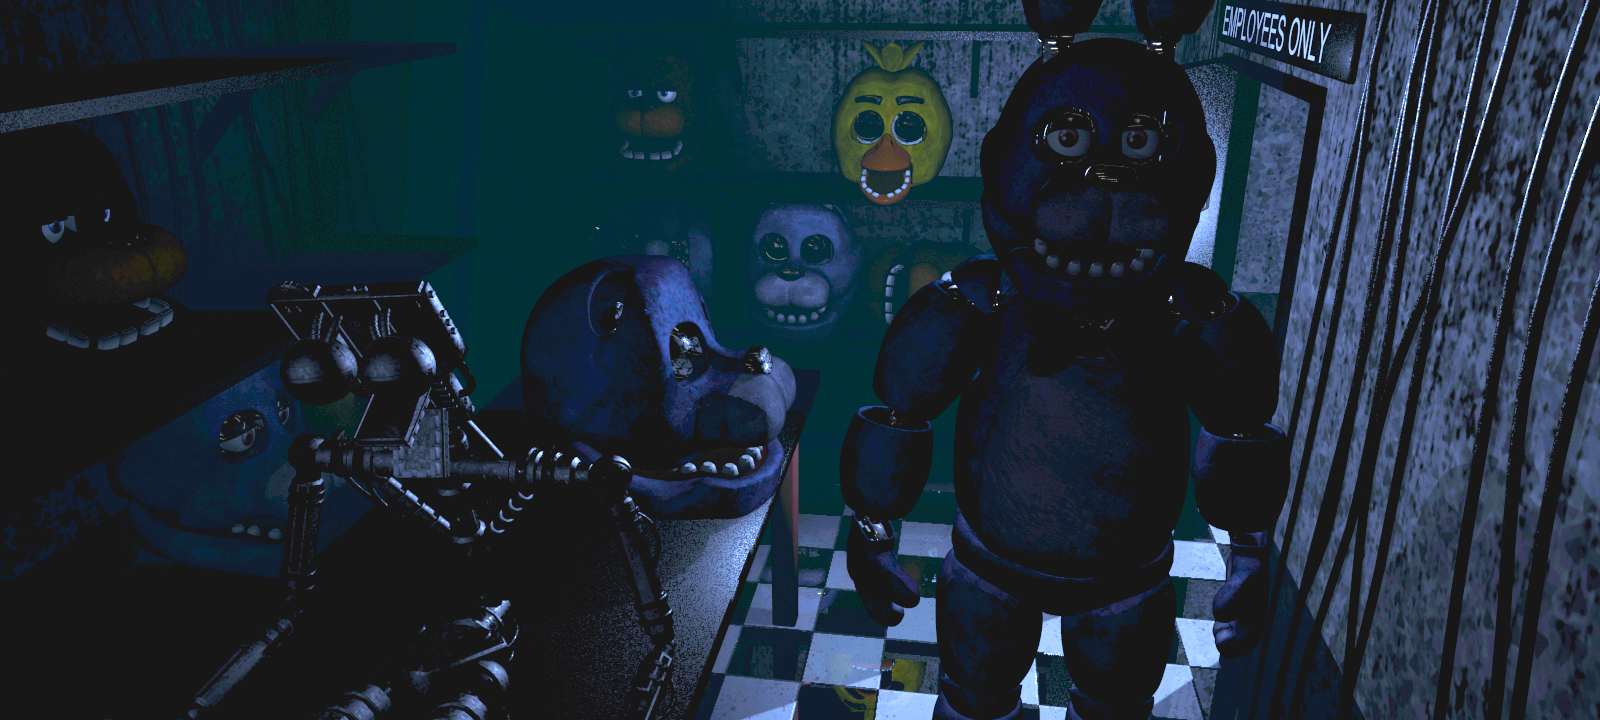 Five nights at freddy s 1 phone guy and the endoskeleton